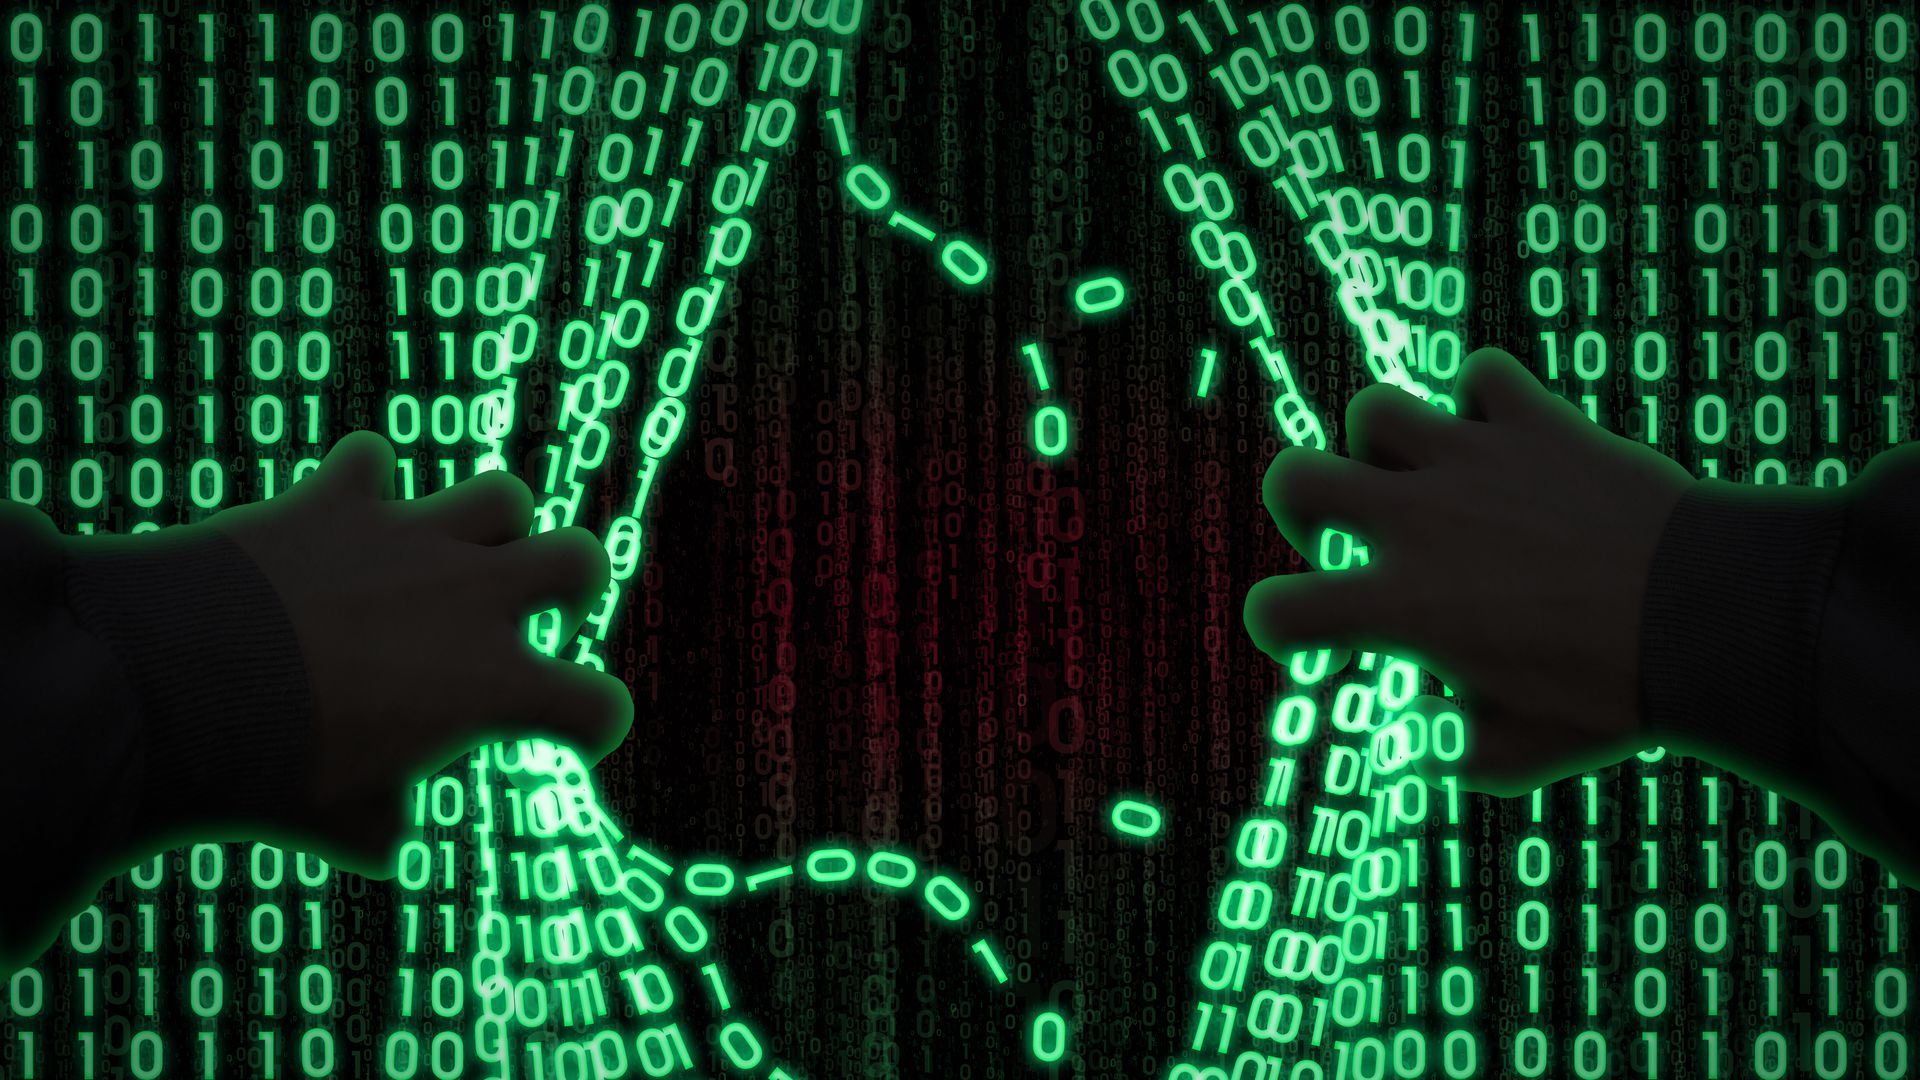 Illustration of a hacker breaking binary data